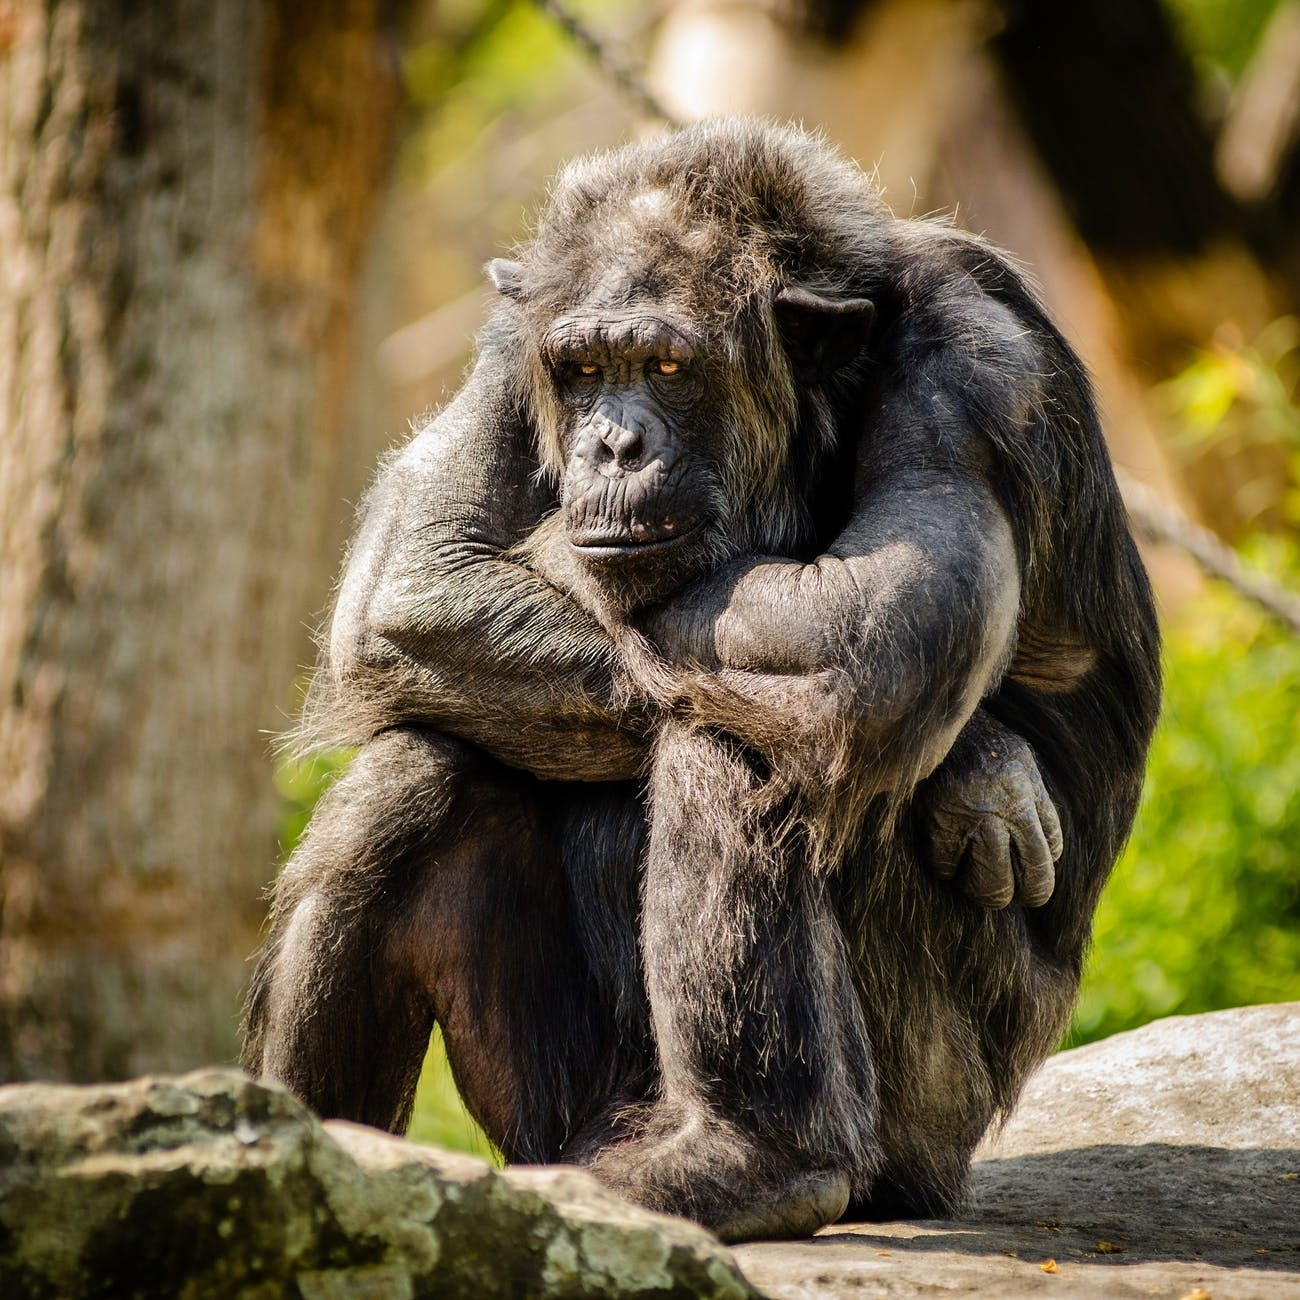 chimpanzee sitting on gray stone in closeup photography during daytime